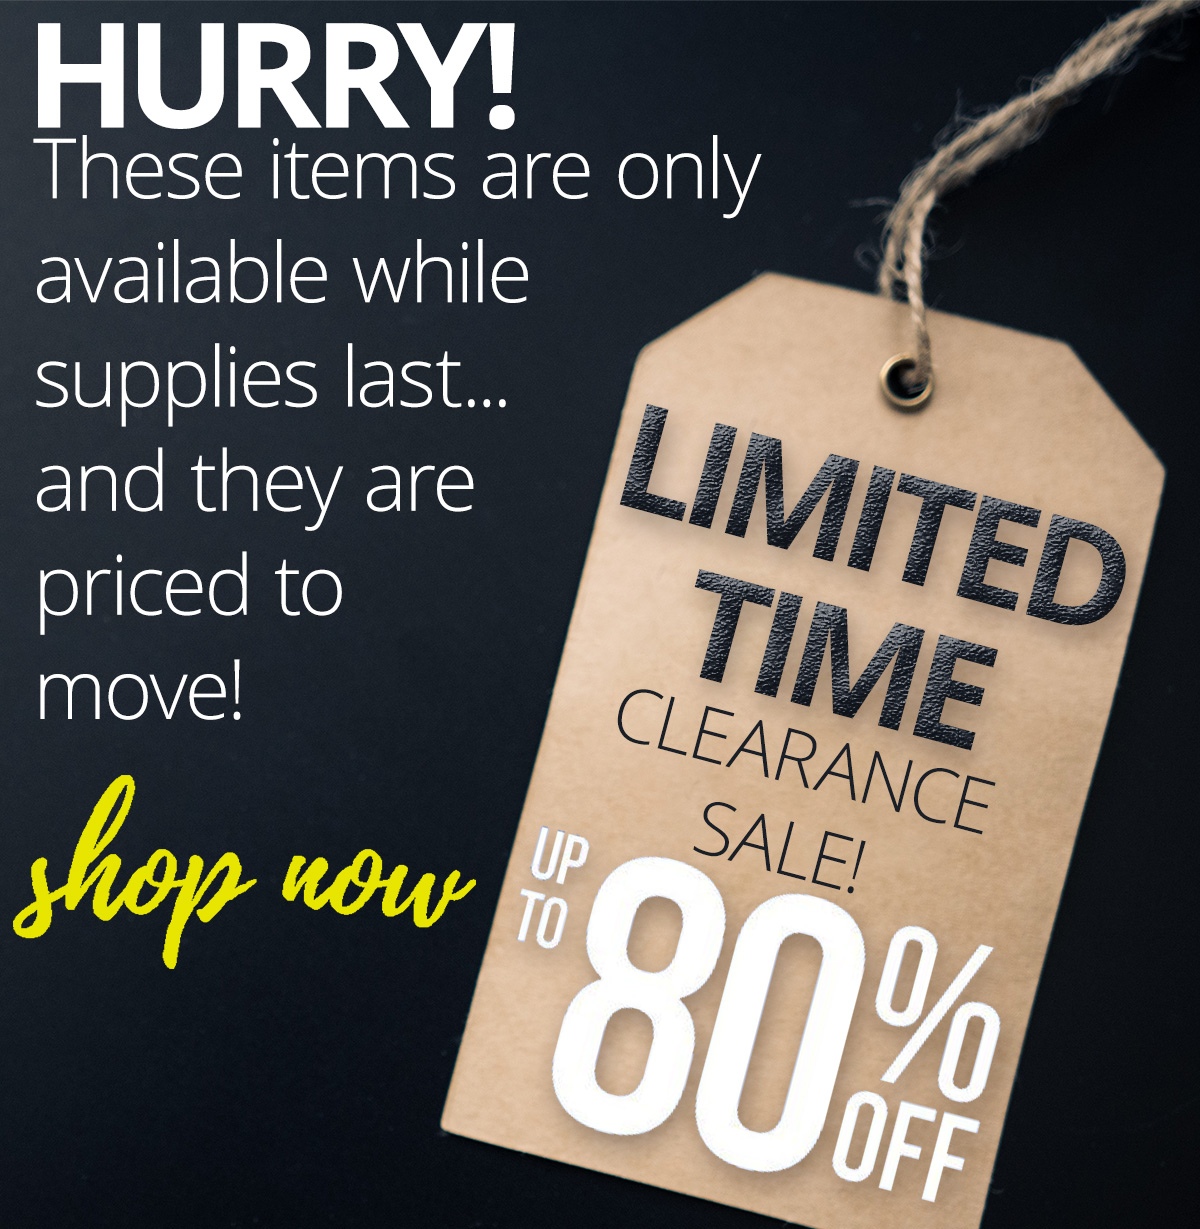 Don't miss out on these clearance items! Up to 80% off while supplies last!